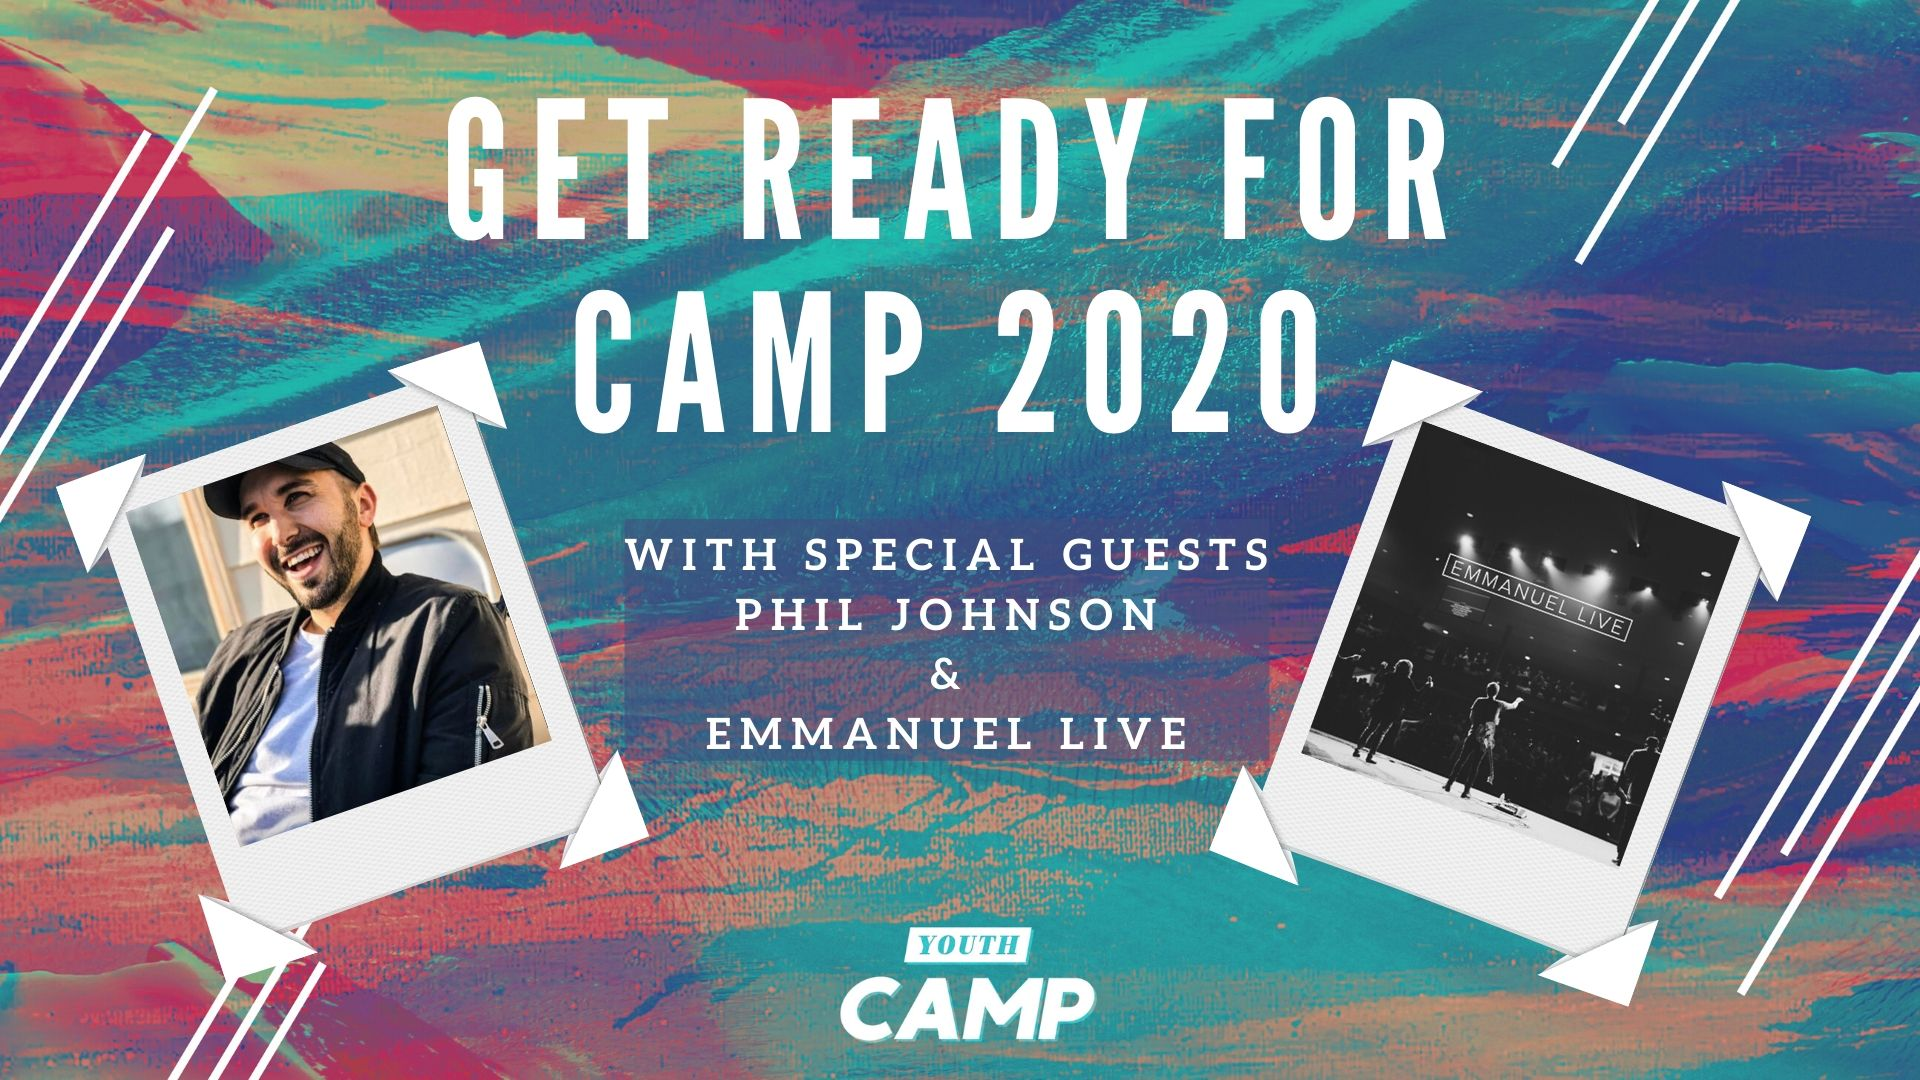 get ready for camp 2020